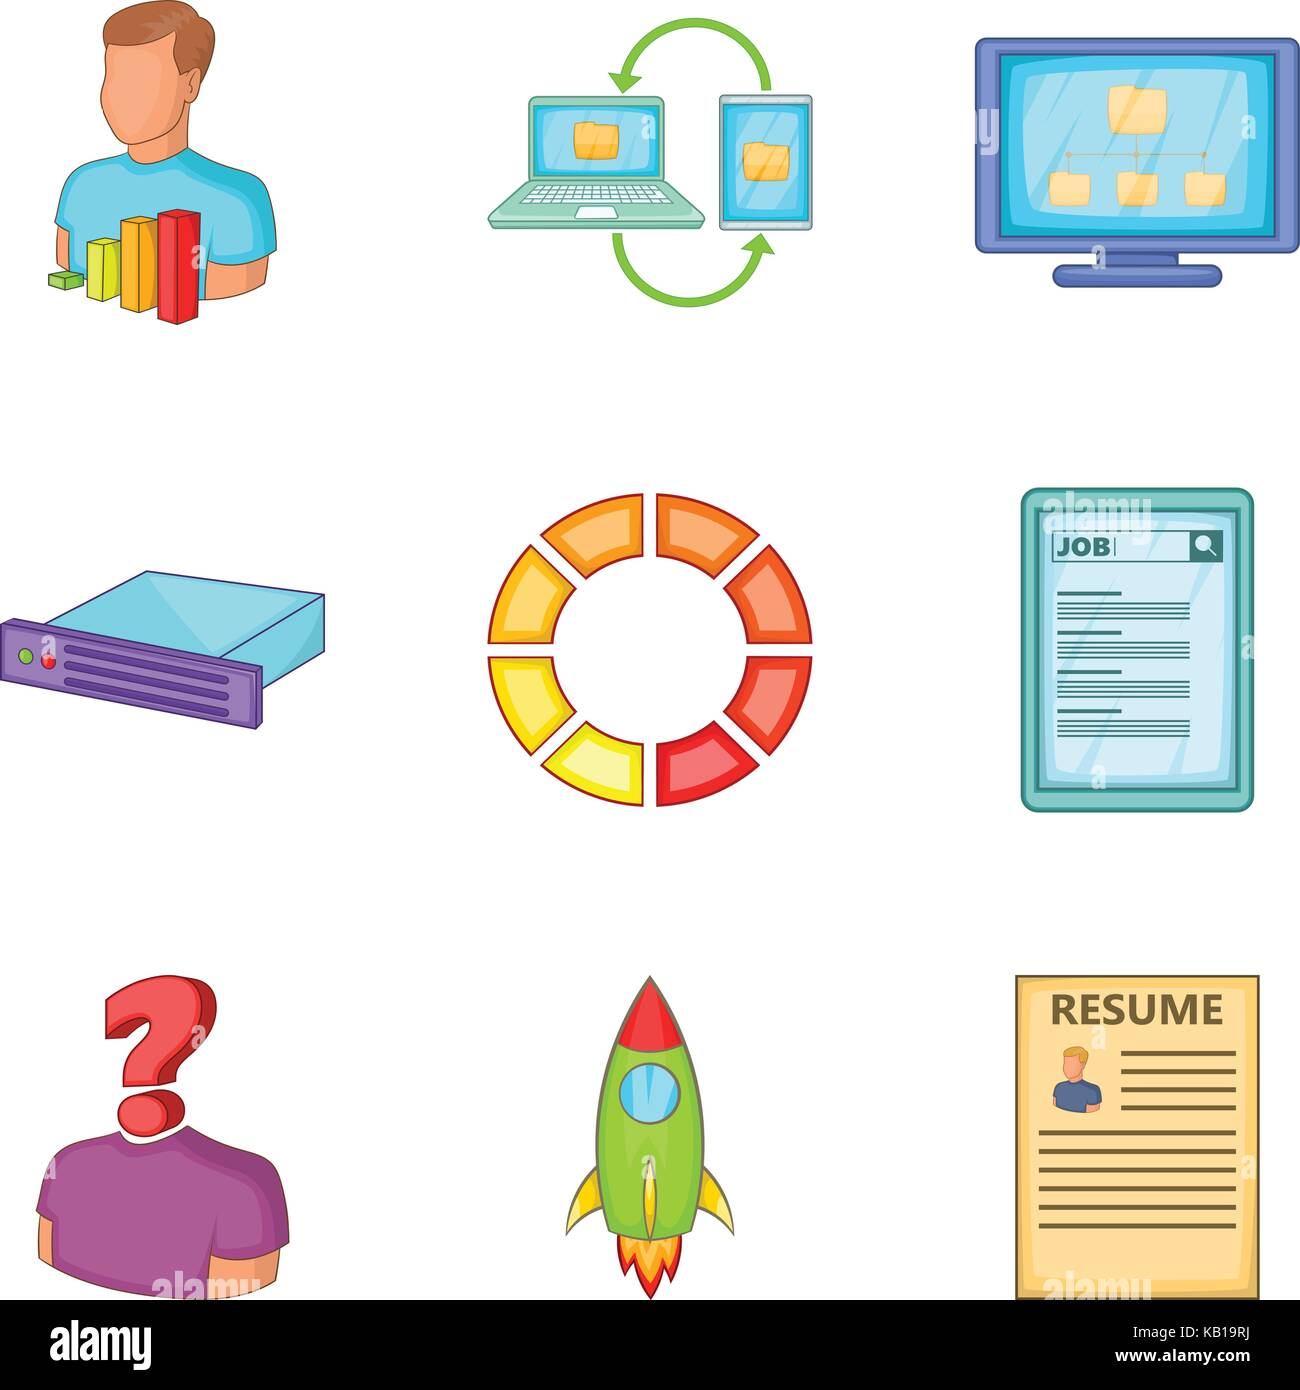 Resume For Work Icons Set Cartoon Style Stock Vector Art